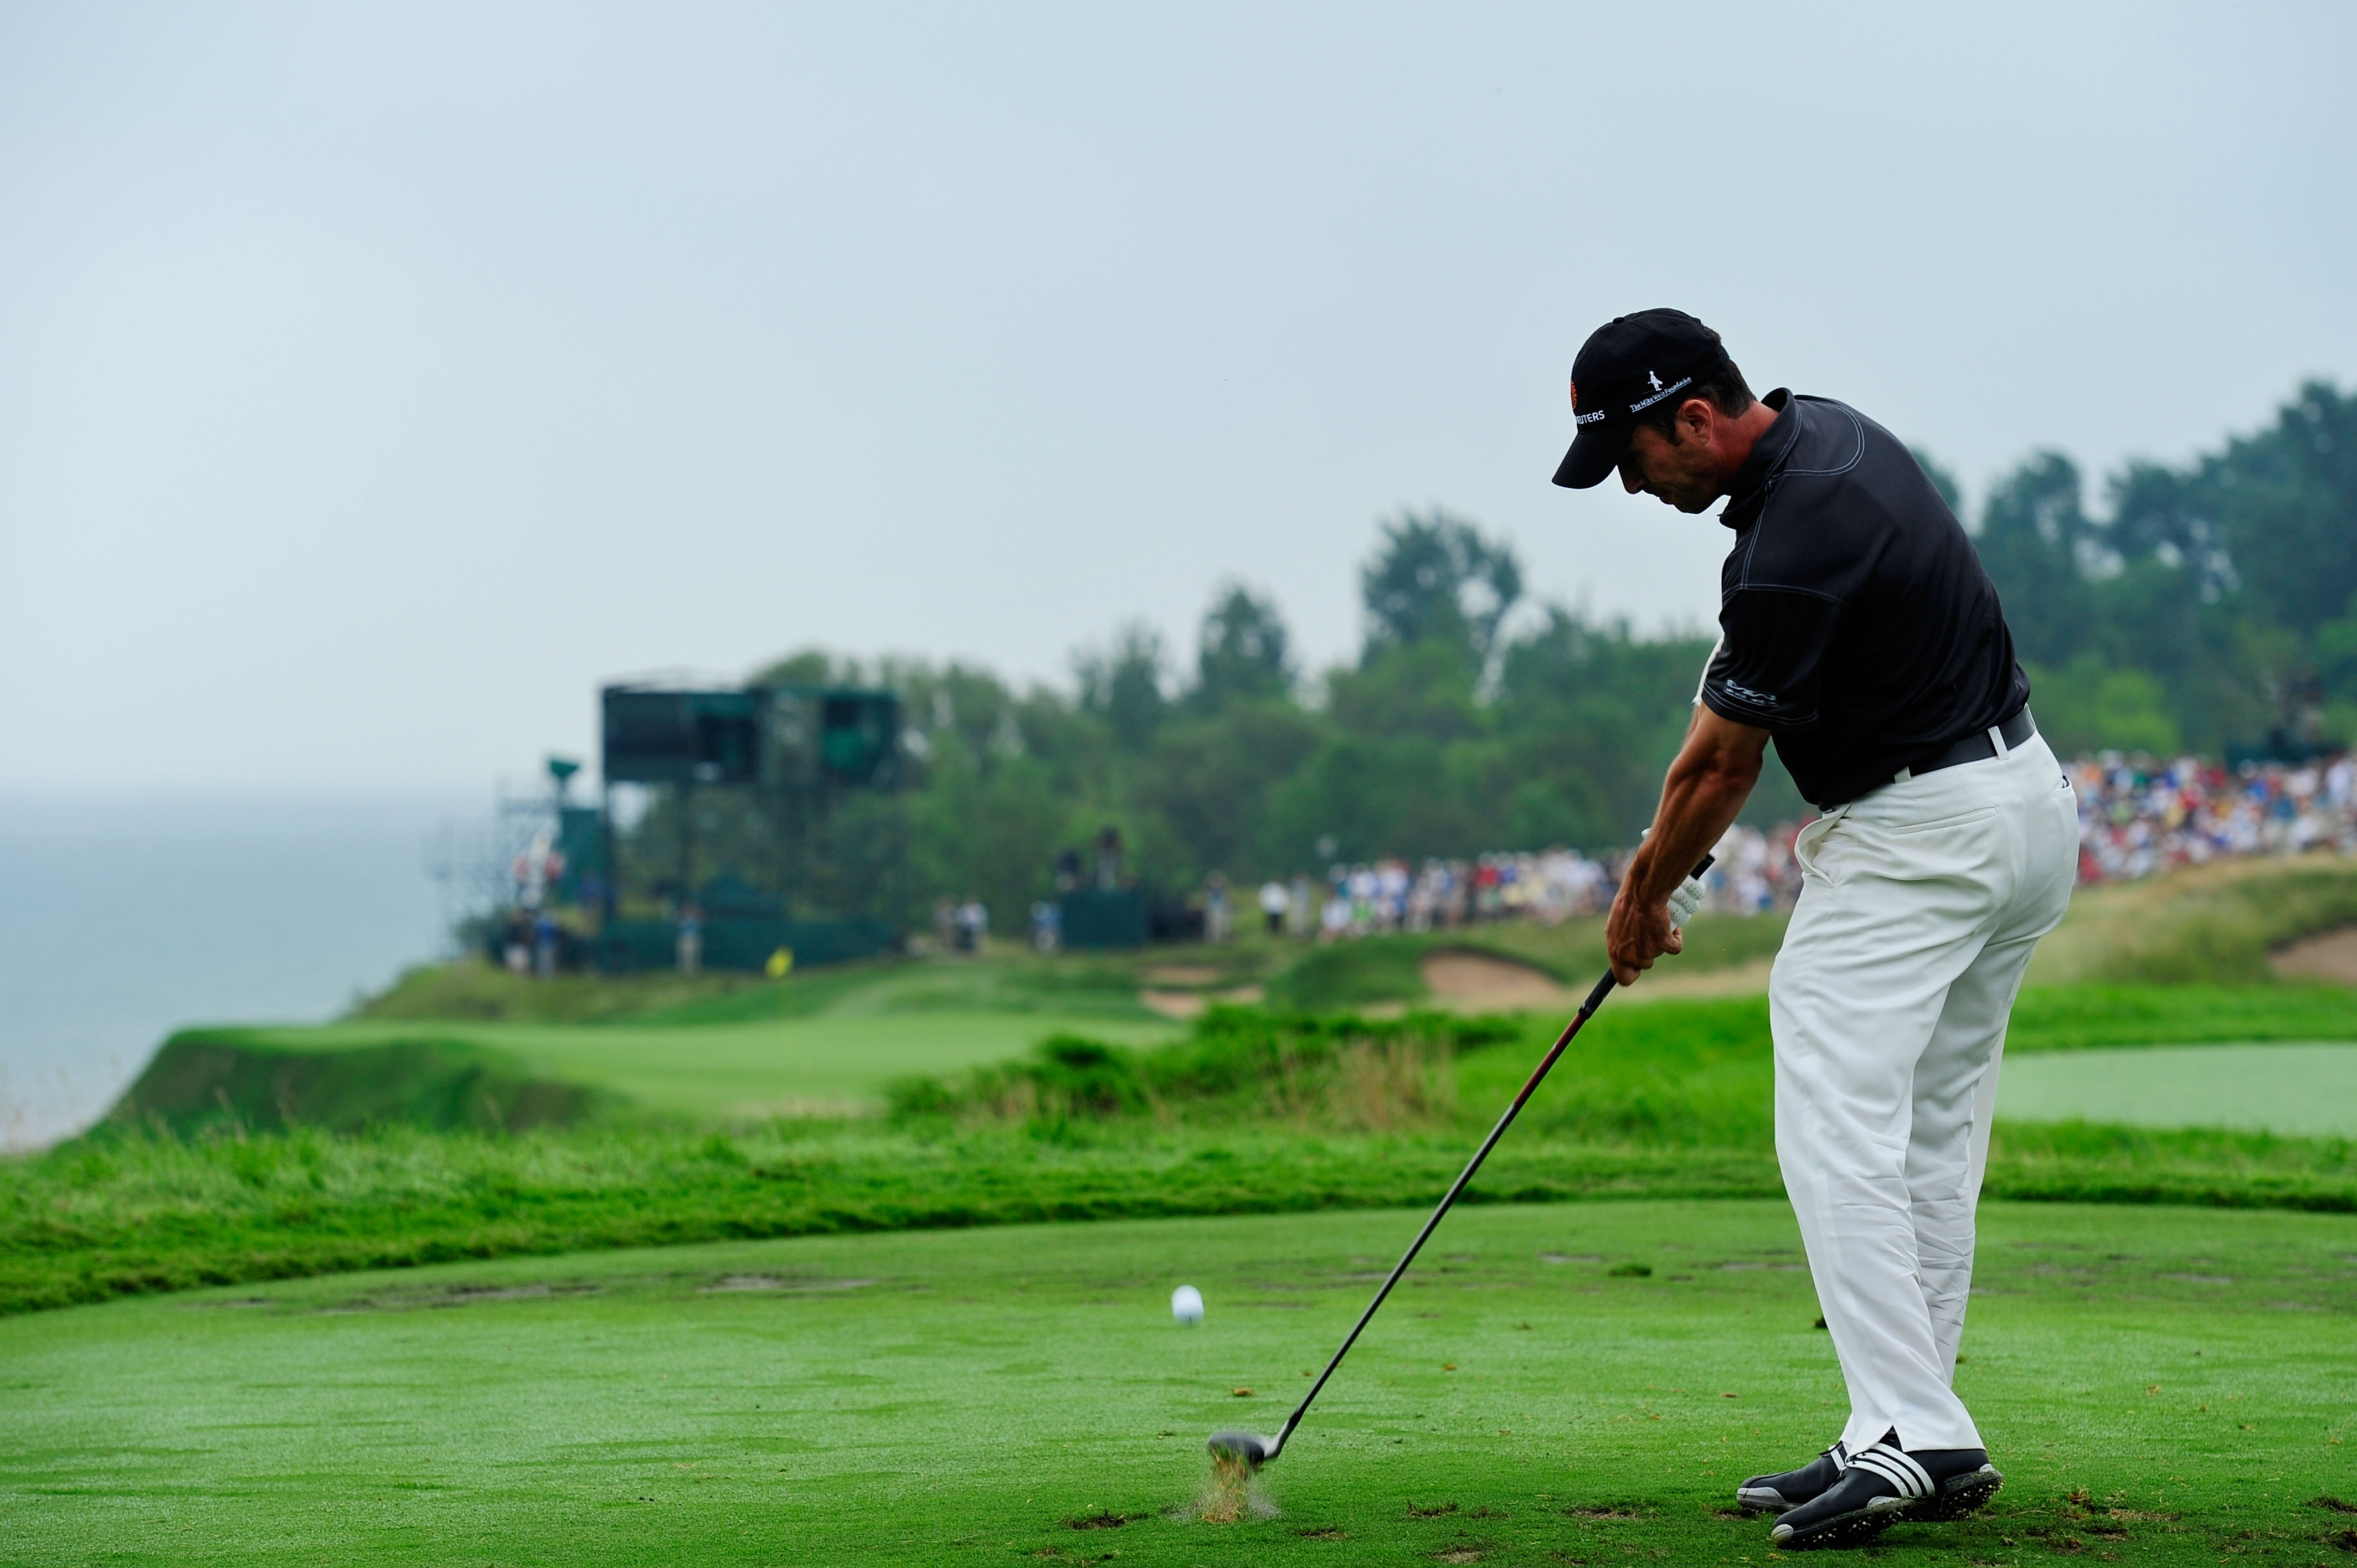 KOHLER, WI - AUGUST 13:  Mike Weir of Canada hits his tee shot on the 17th hole during the continuation of the first round of the 92nd PGA Championship on the Straits Course at Whistling Straits on August 13, 2010 in Kohler, Wisconsin.  (Photo by Stuart F